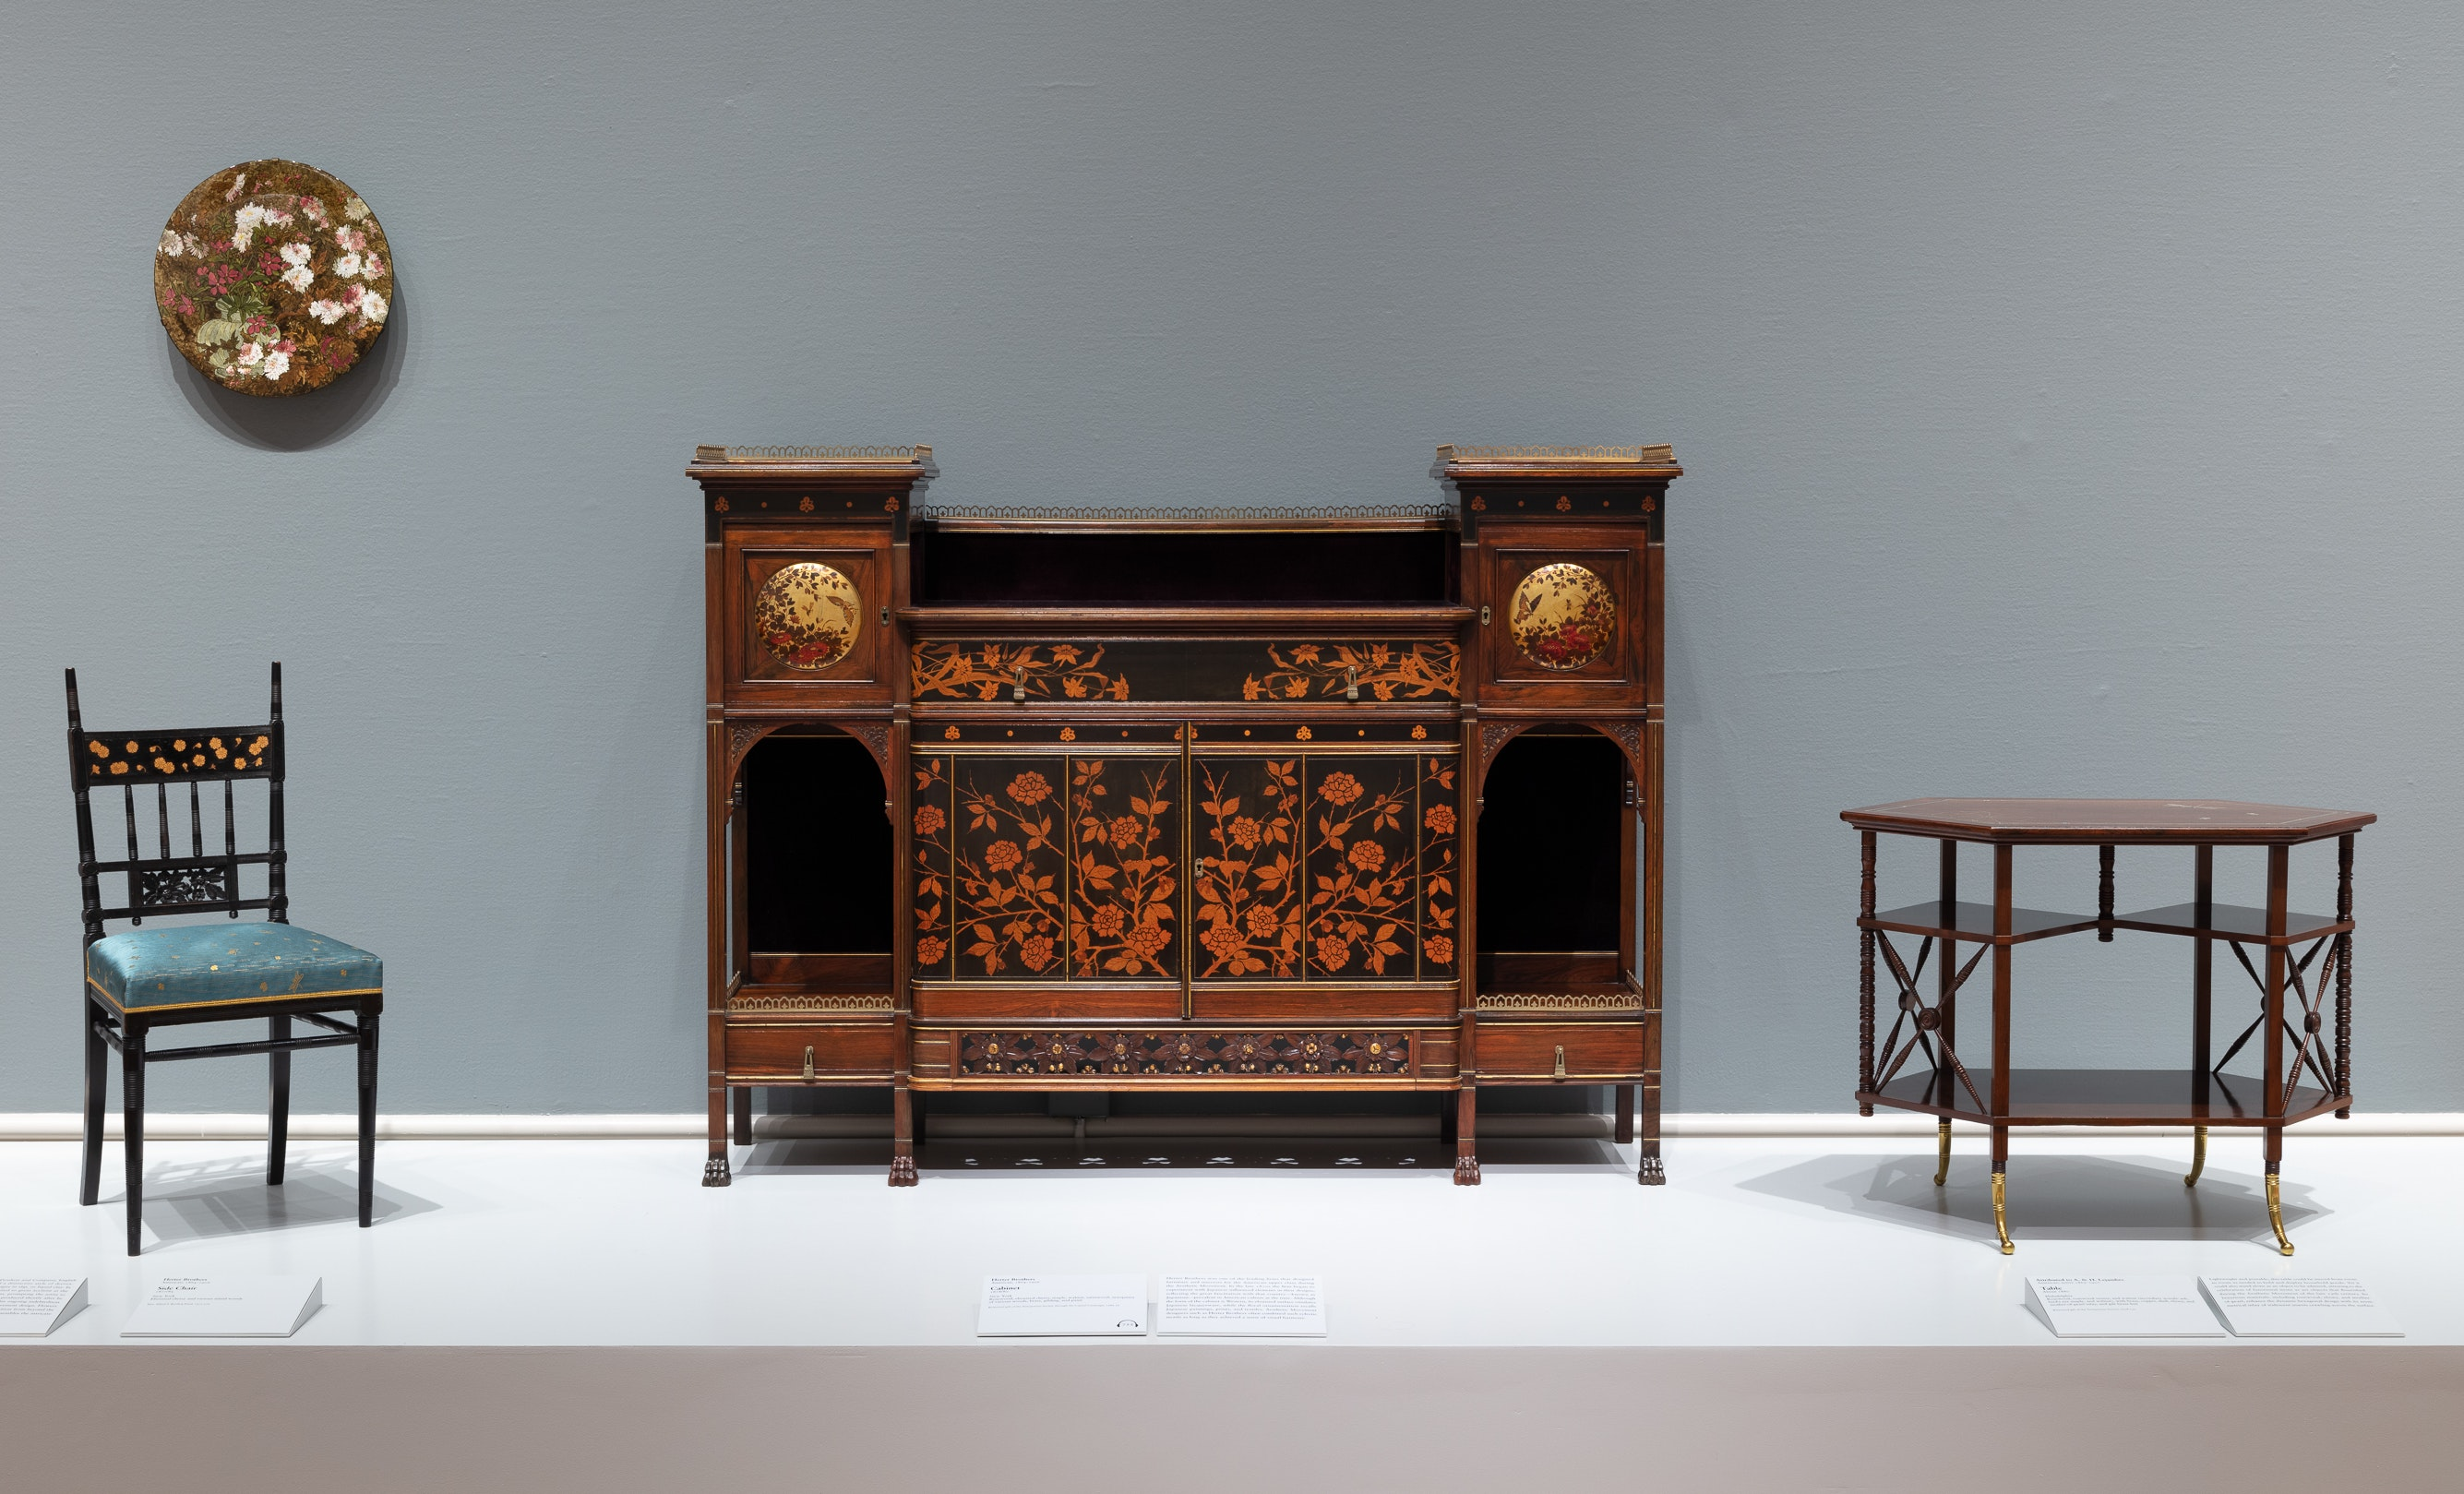 Furniture by the Herter Brothers and A and H Lejambre in the American gallery 273.